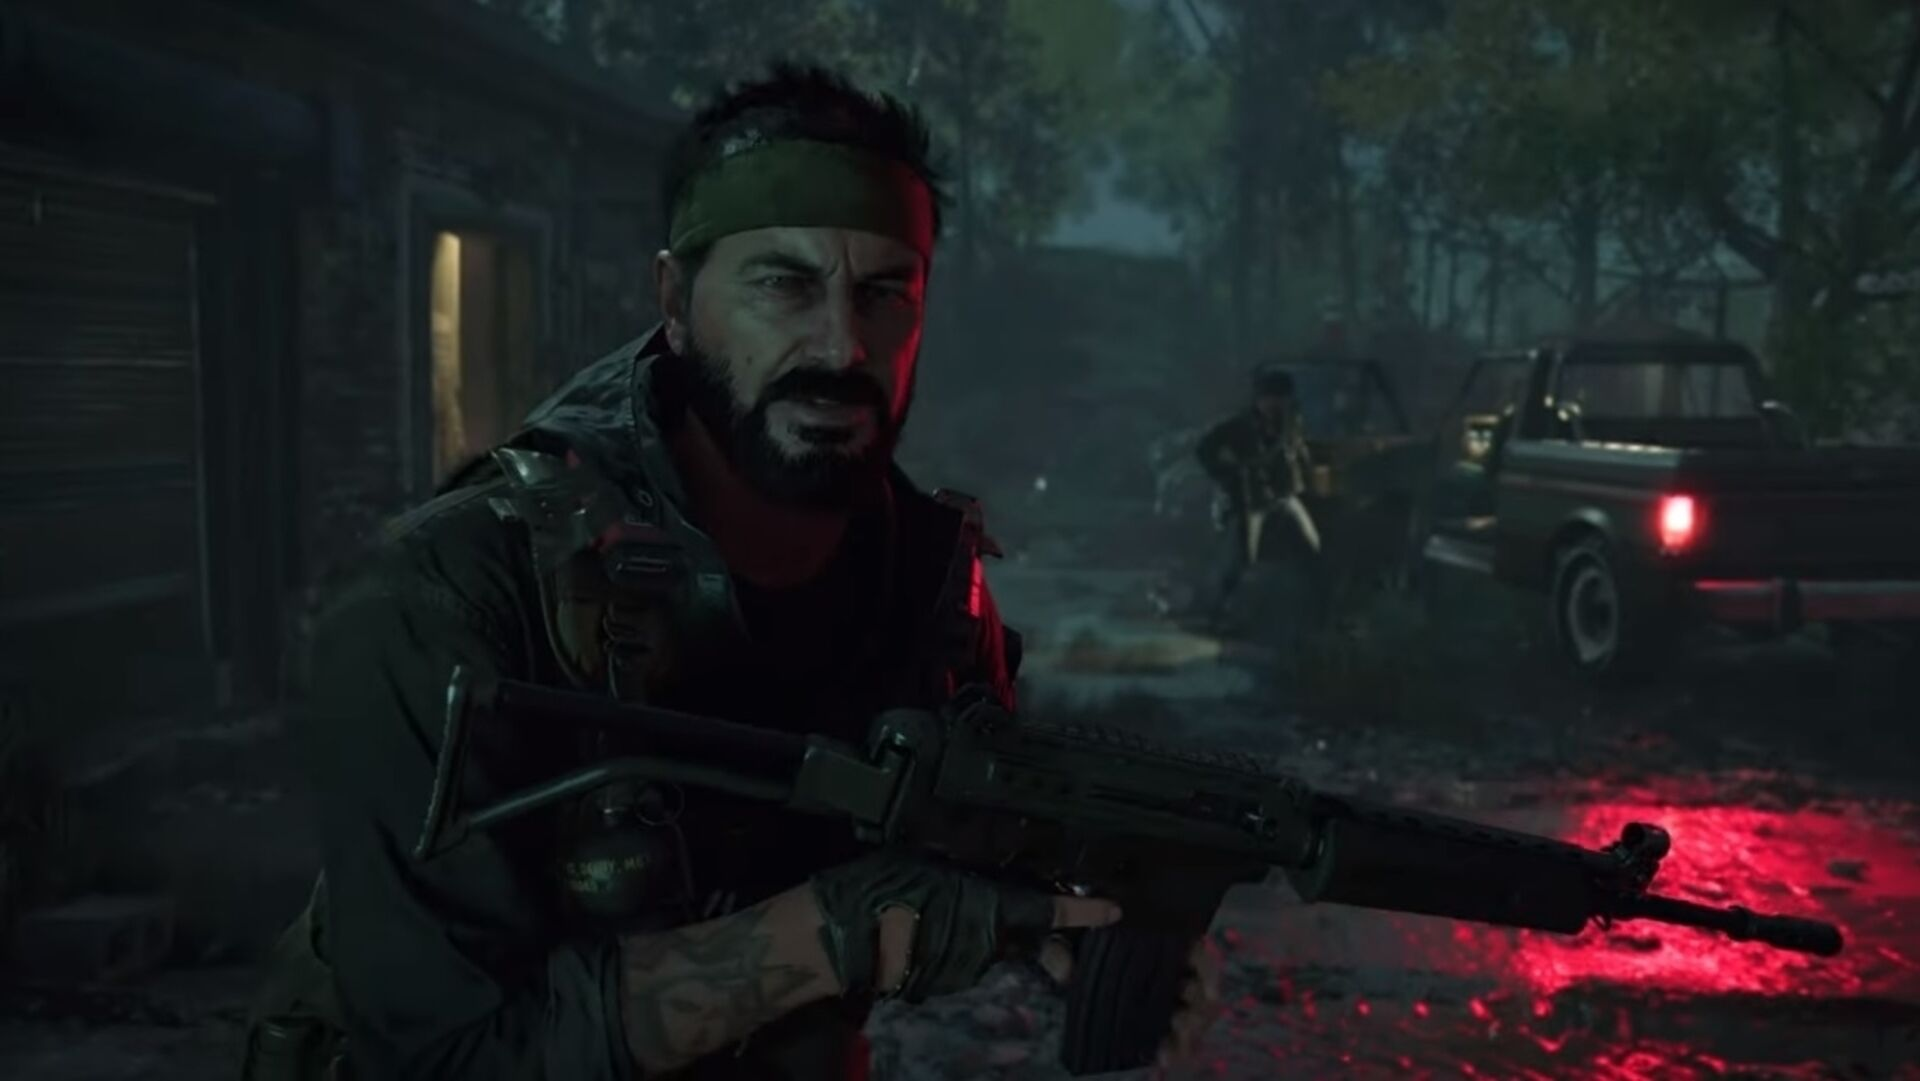 Here S Our First Look At Call Of Duty Black Ops Cold War Running On Ps5 Eurogamer Net